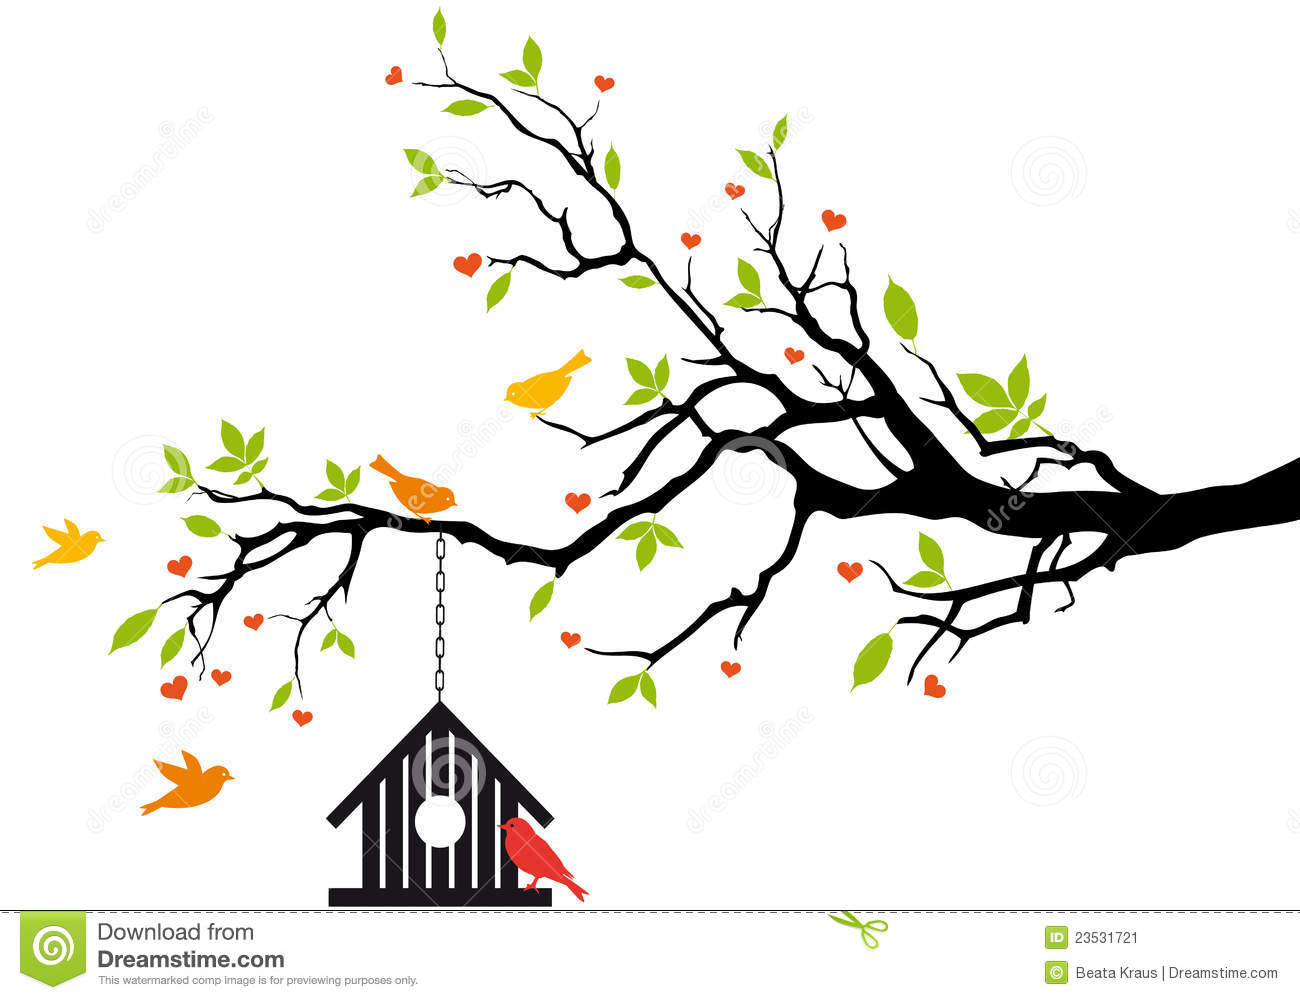 Bird clipart tree. Silhouette with birds at